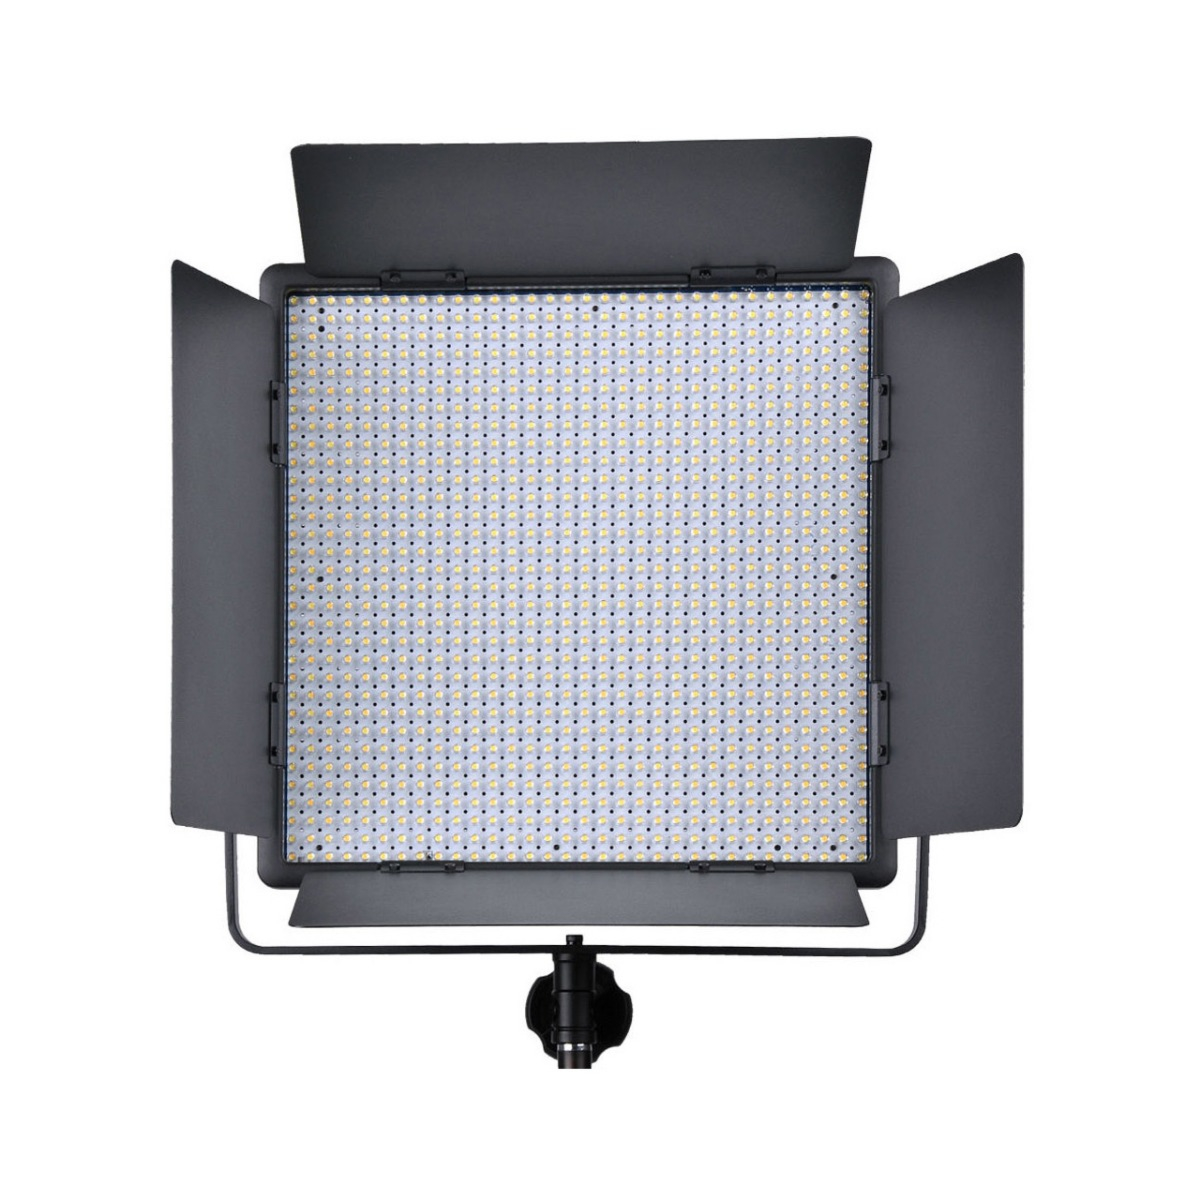 Godox LED 1000W Video Light - Daylight-Balanced